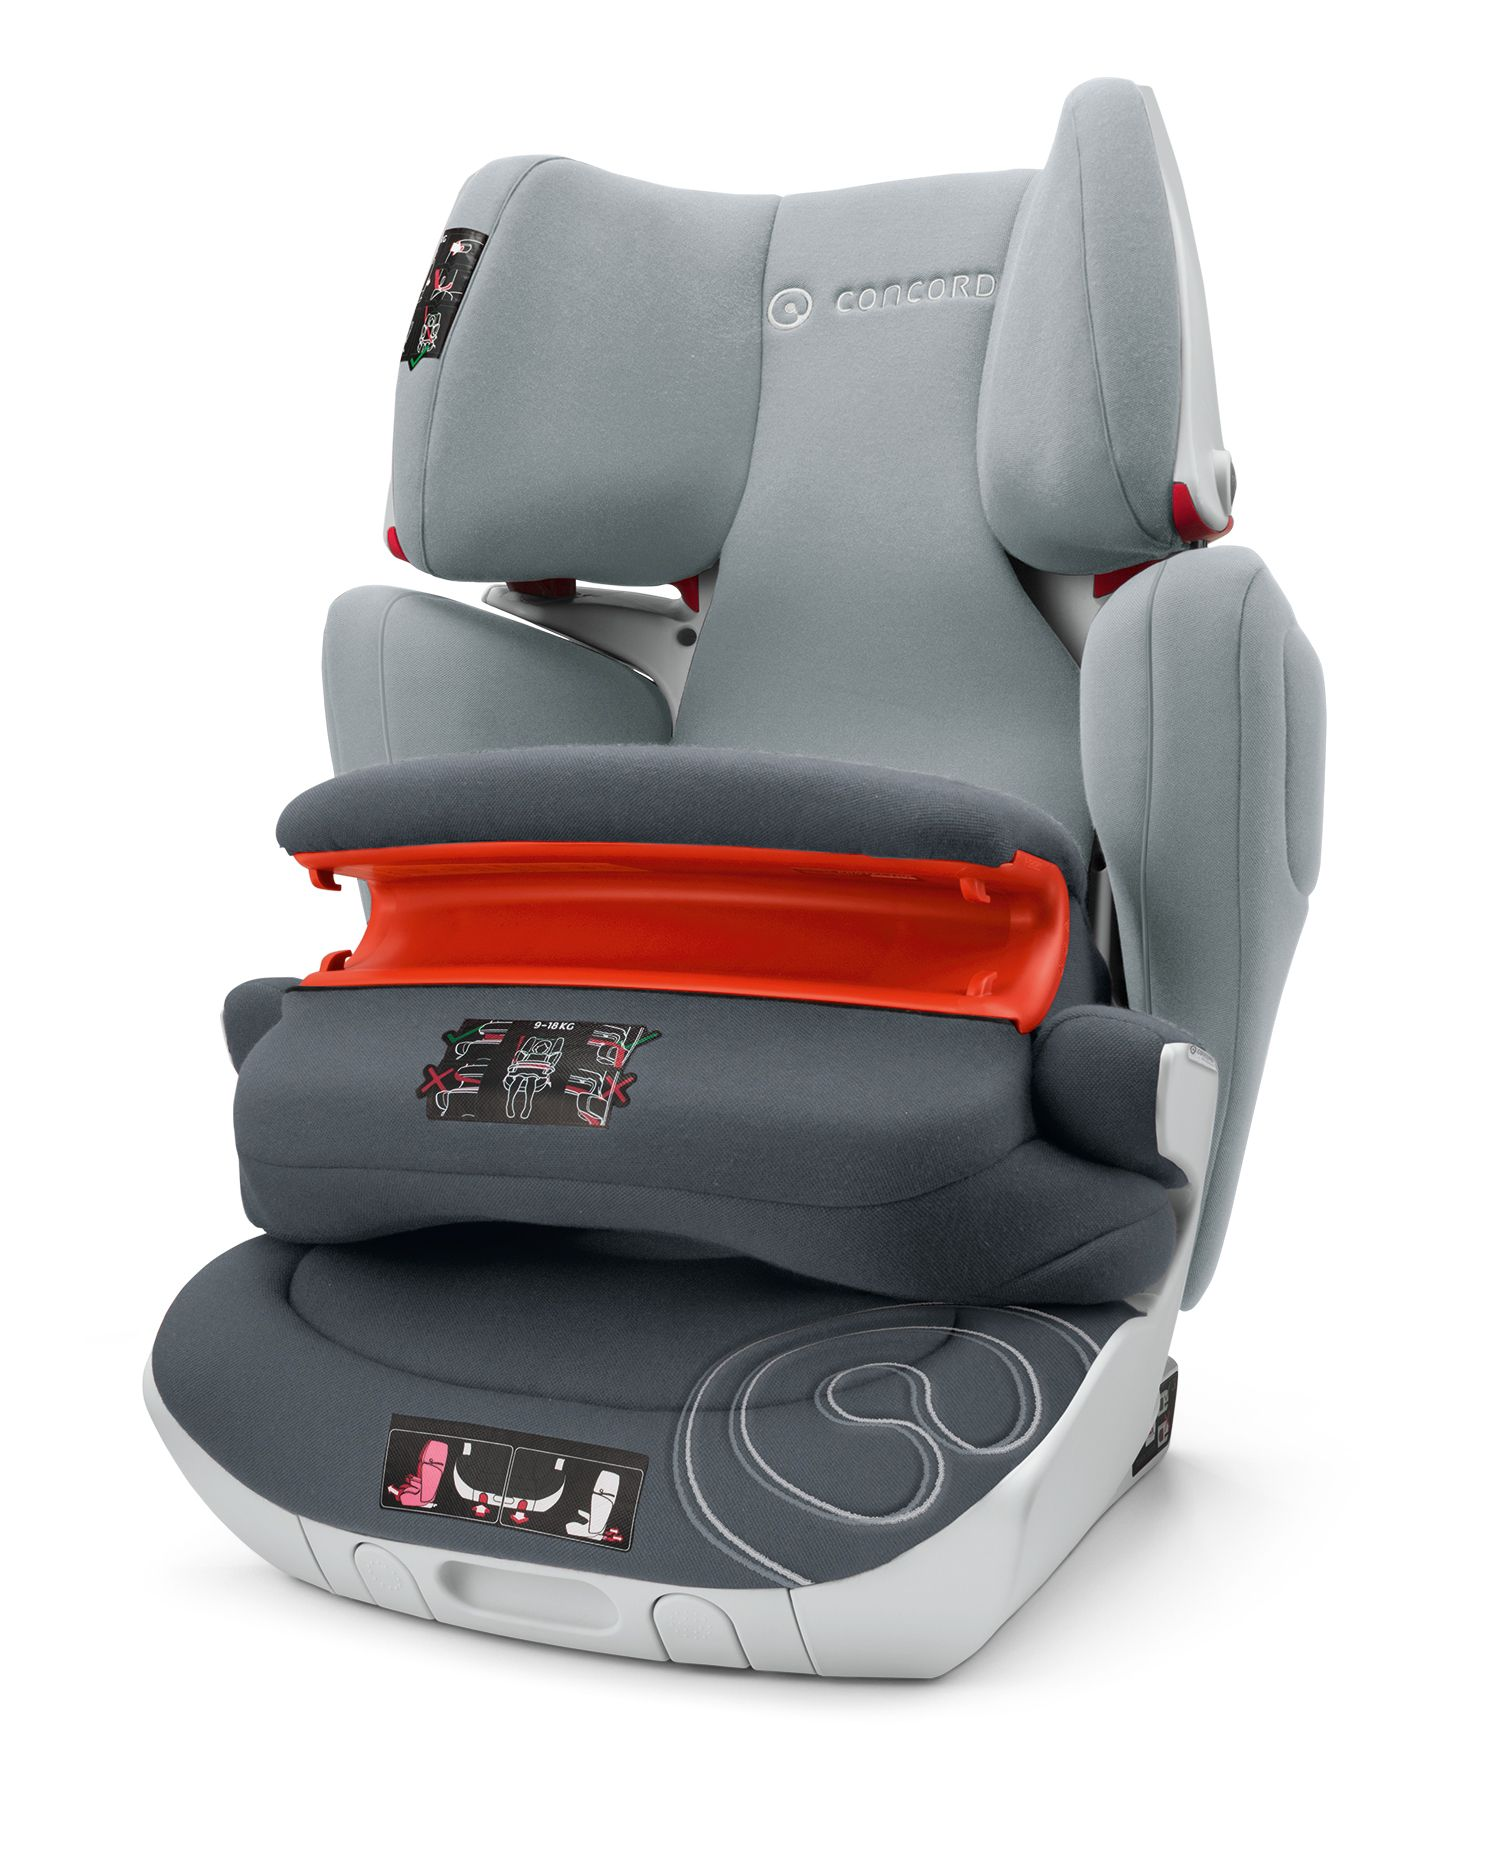 Transformer Xt Pro Group I Ii Iii Age 9 Months Up To 12 Years Weight Of Child 9 Up To 36kg The Transformer Xt Pro Is Equivalent To The Transformer Xt In